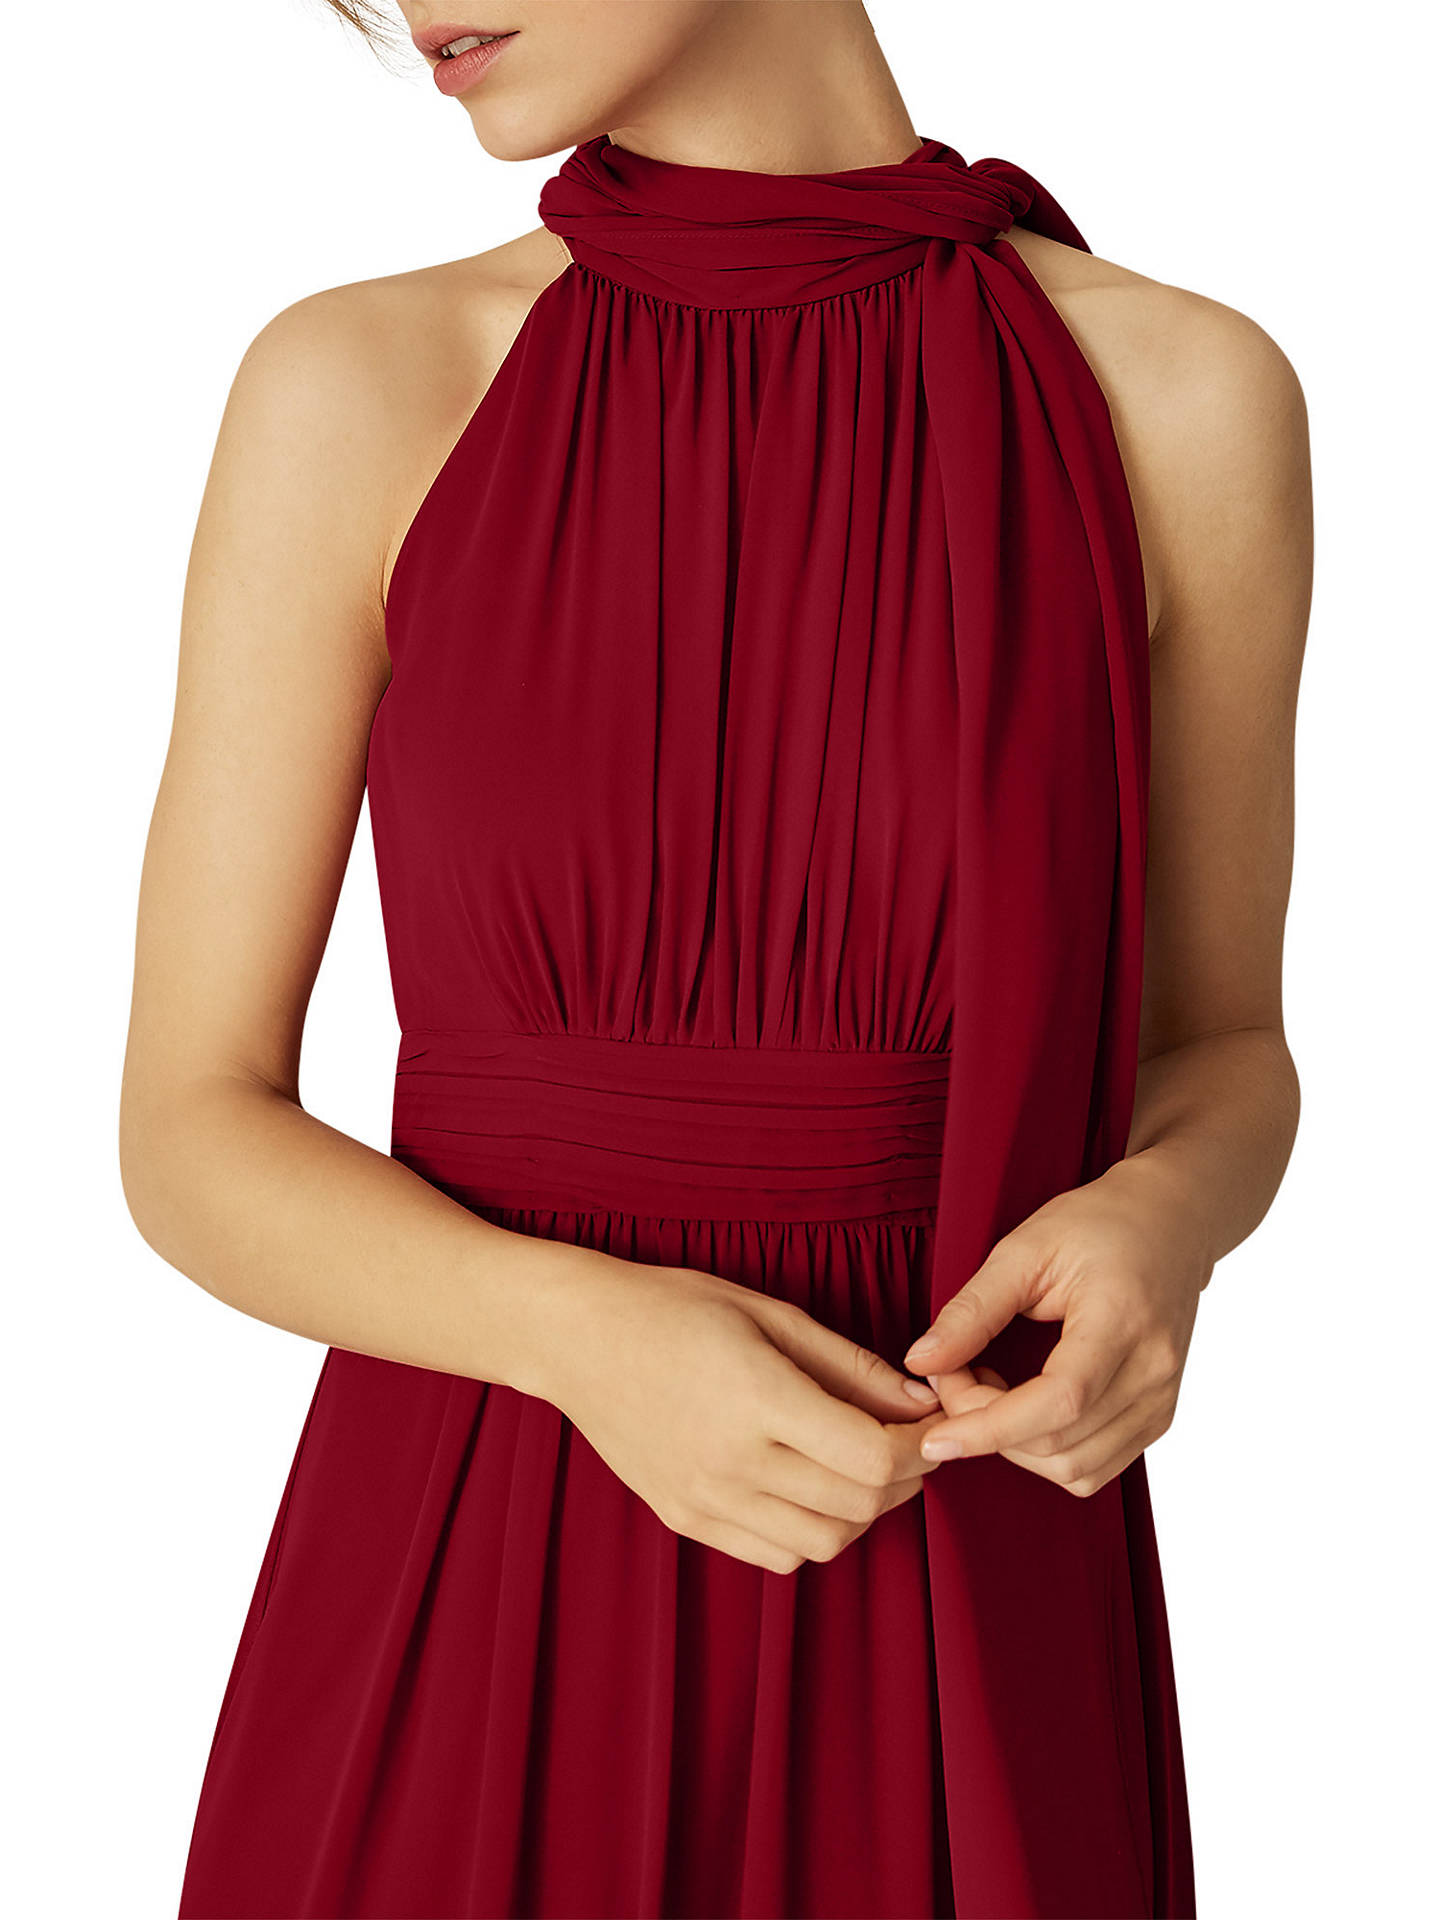 BuyPhase Eight Roxi Halterneck Maxi Dress, Scarlet, 8 Online at johnlewis.com